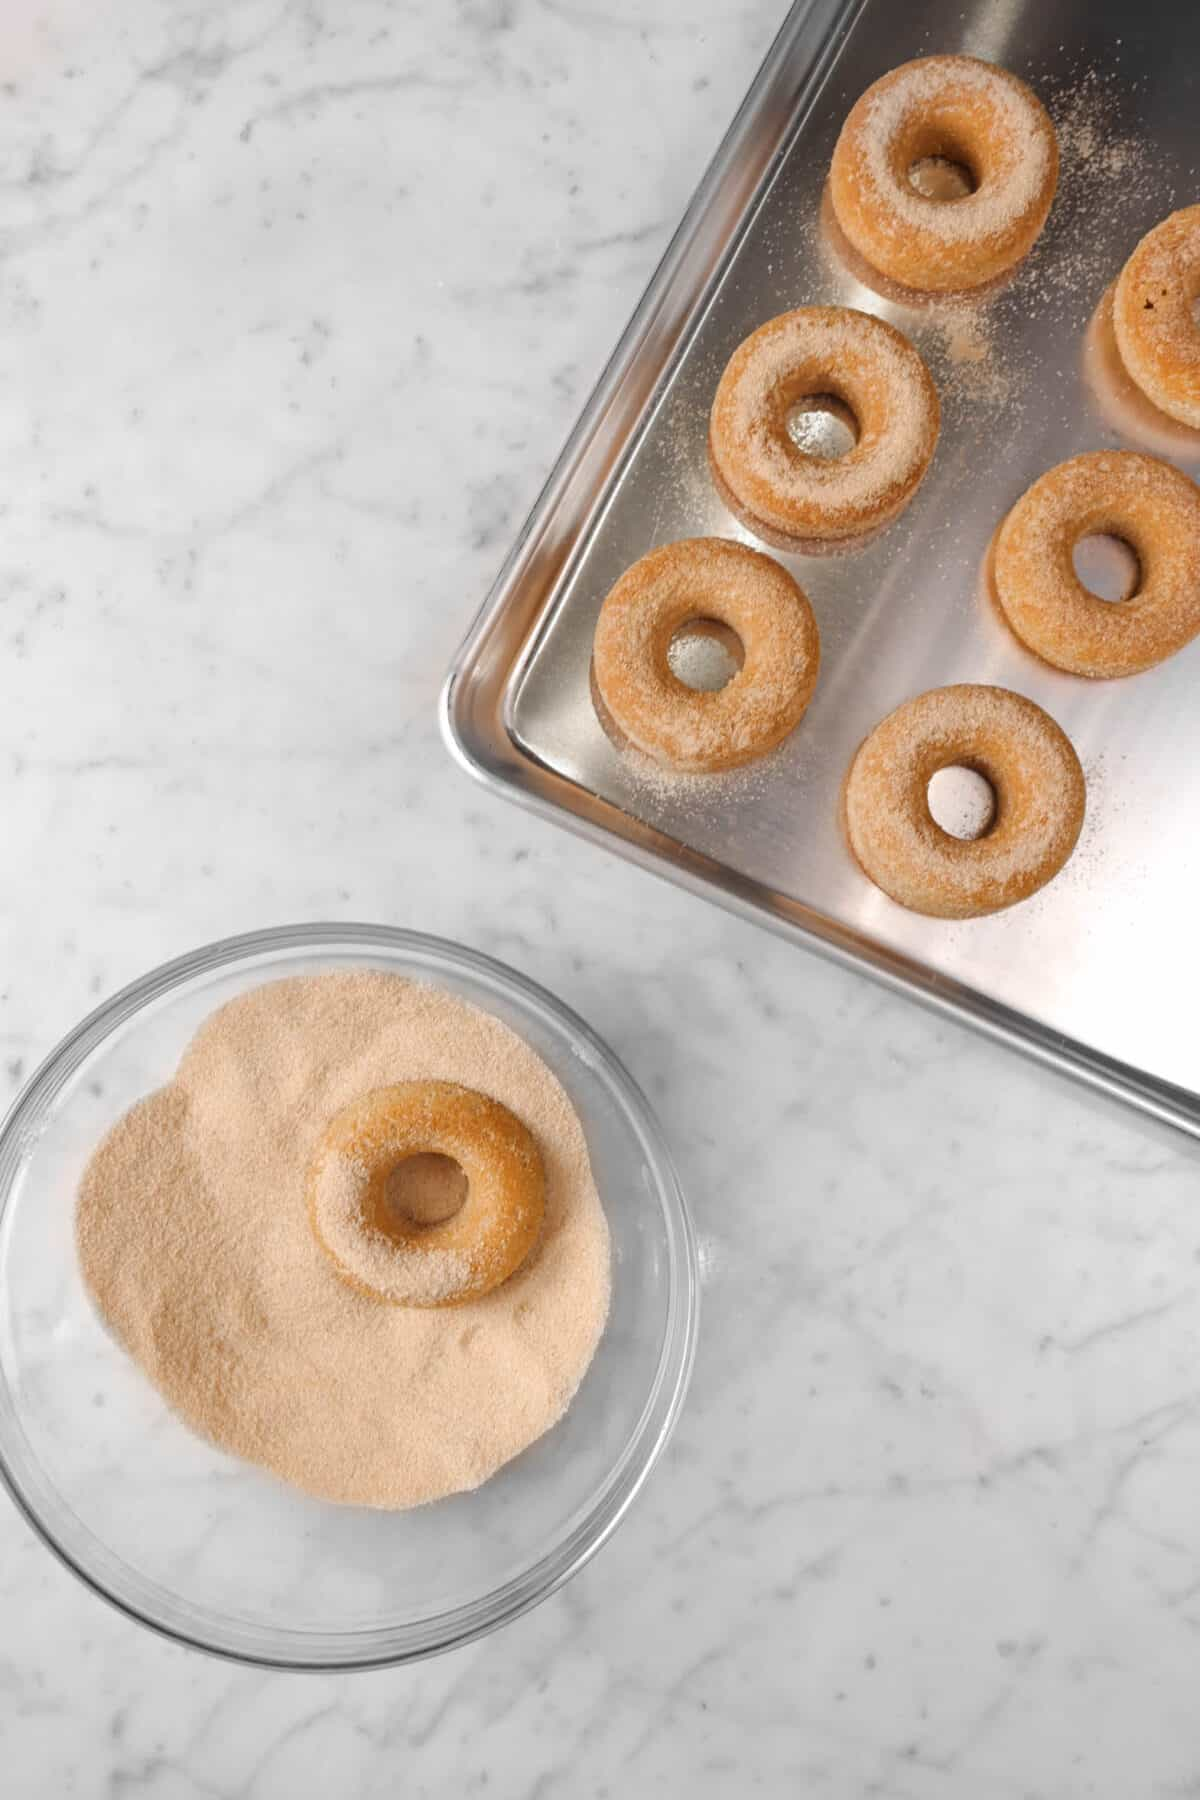 pan of cinnamon donuts with bowl of cinnamon sugar and a donut it